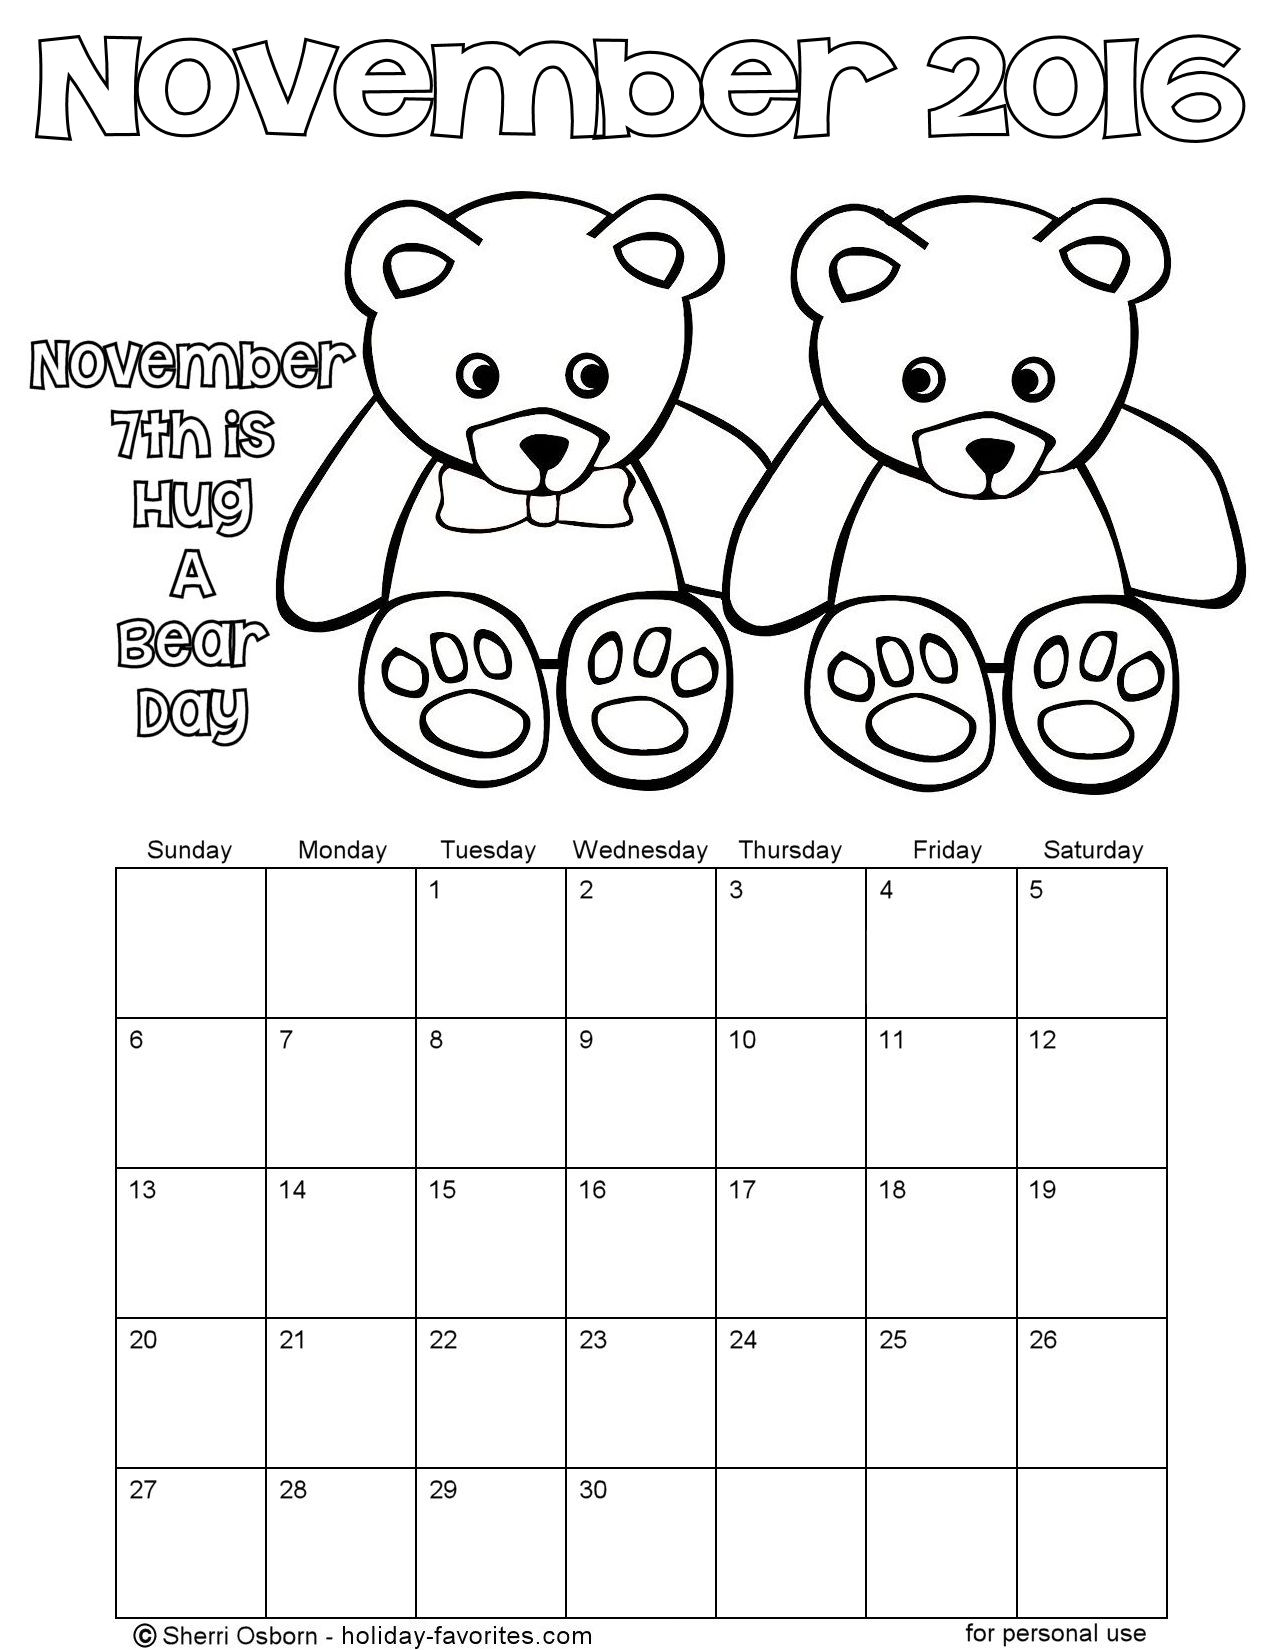 November 2016 Teddy Dear Coloring Calendar Page